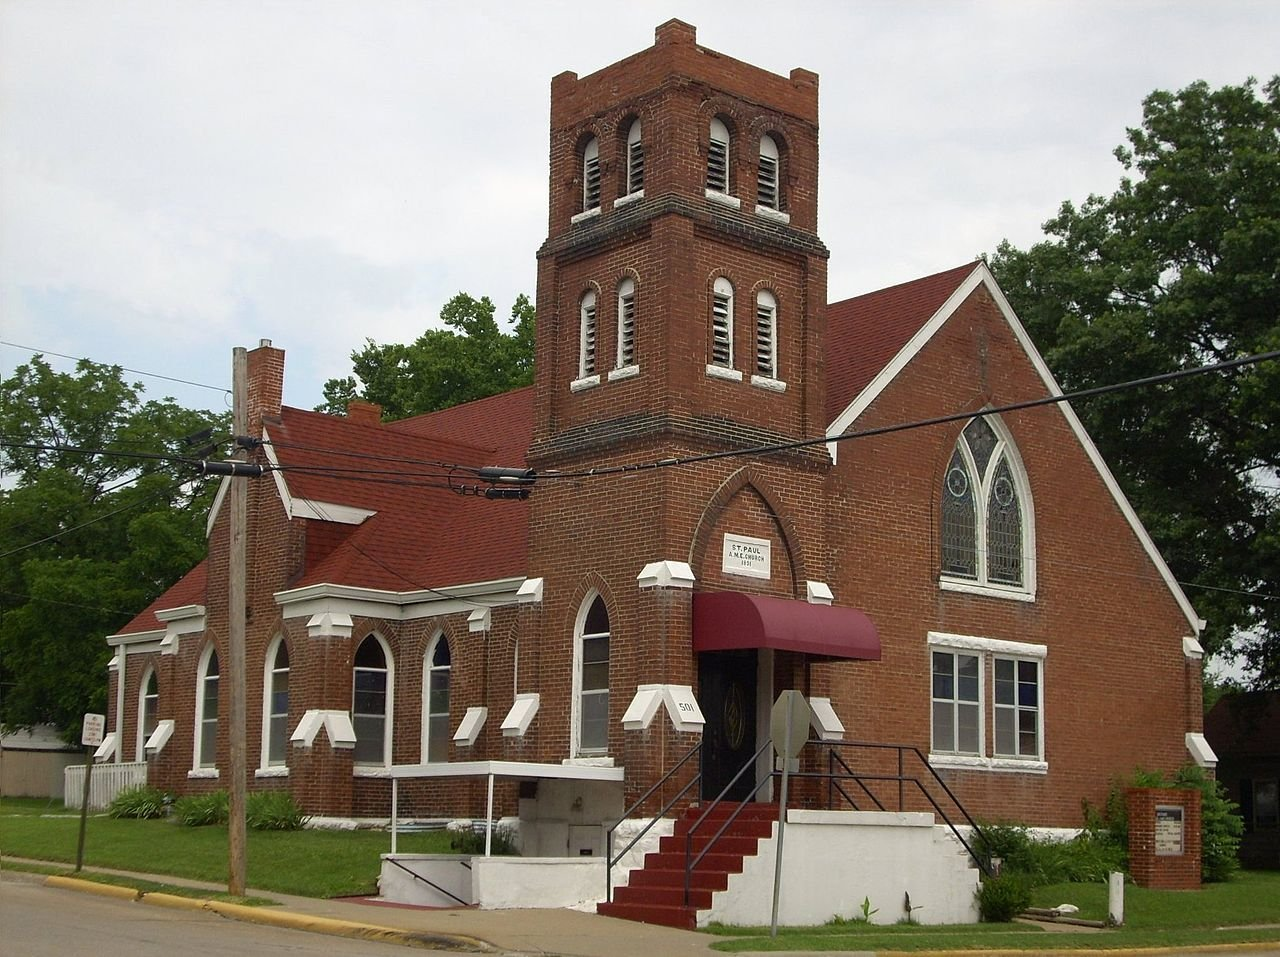 St. Paul A.M.E. Church was built in 1892.